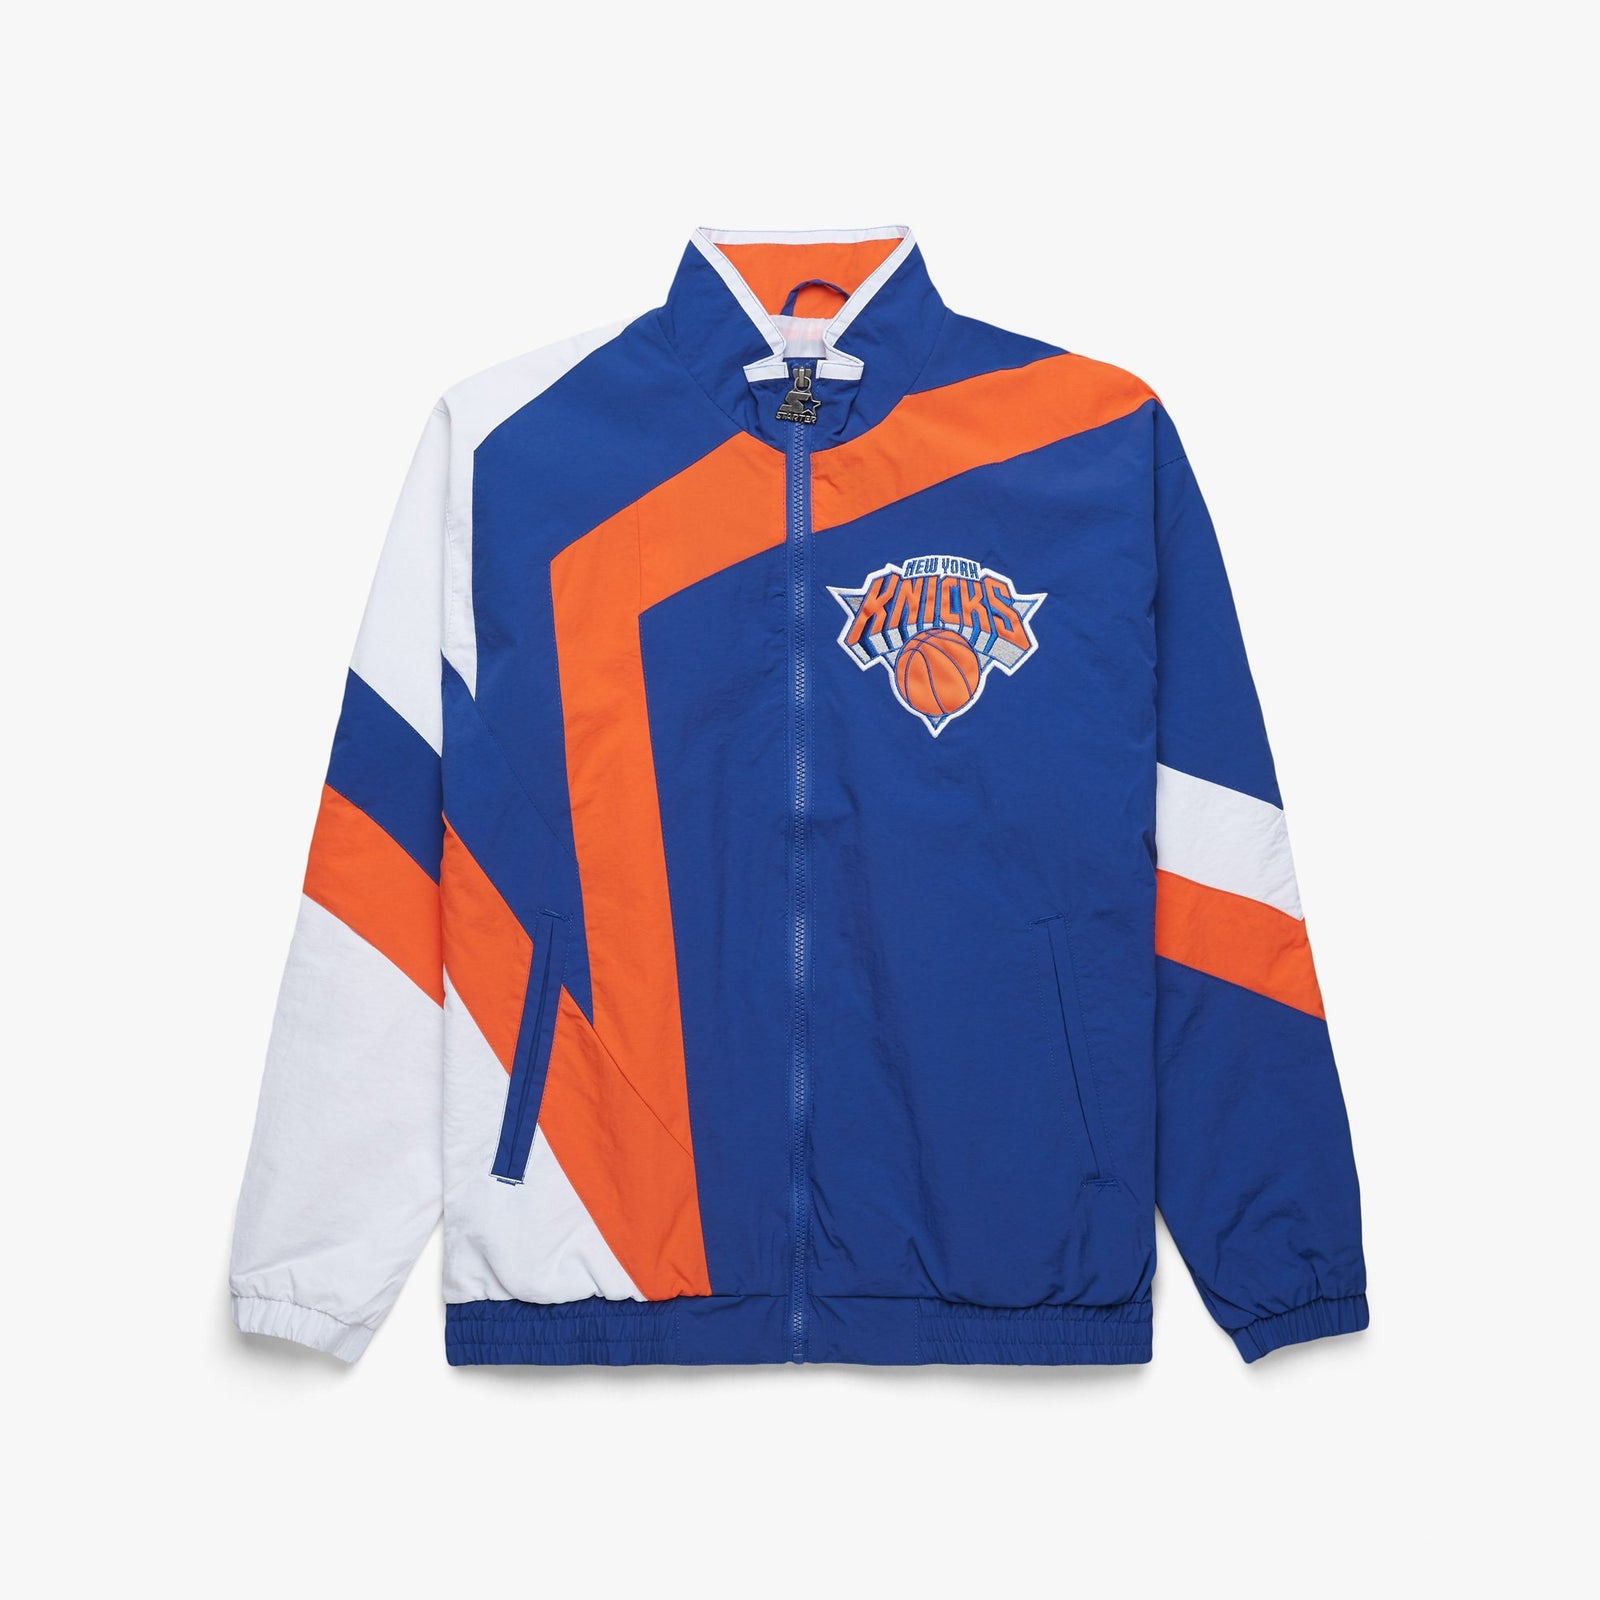 HOMAGE x Starter NBA Knicks Warmup Jacket